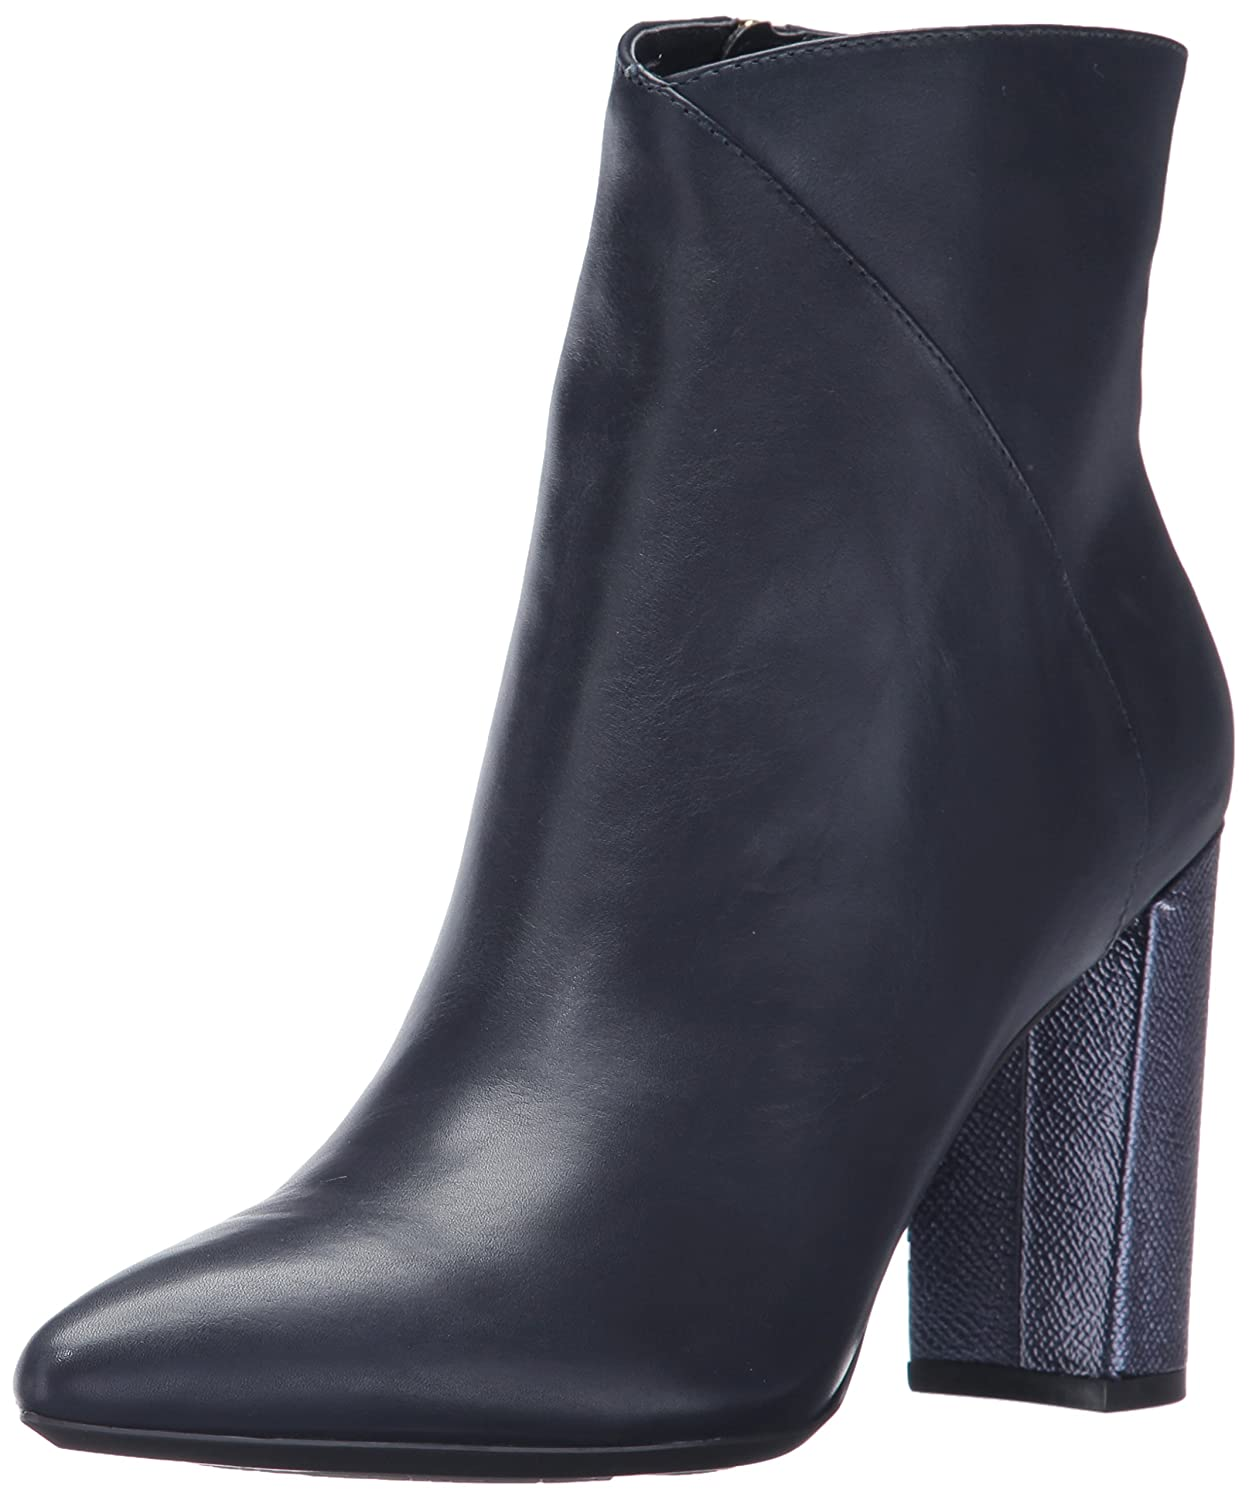 Nine West Women's Argyle Suede Ankle Boot B071F41W14 11 B(M) US|Navy